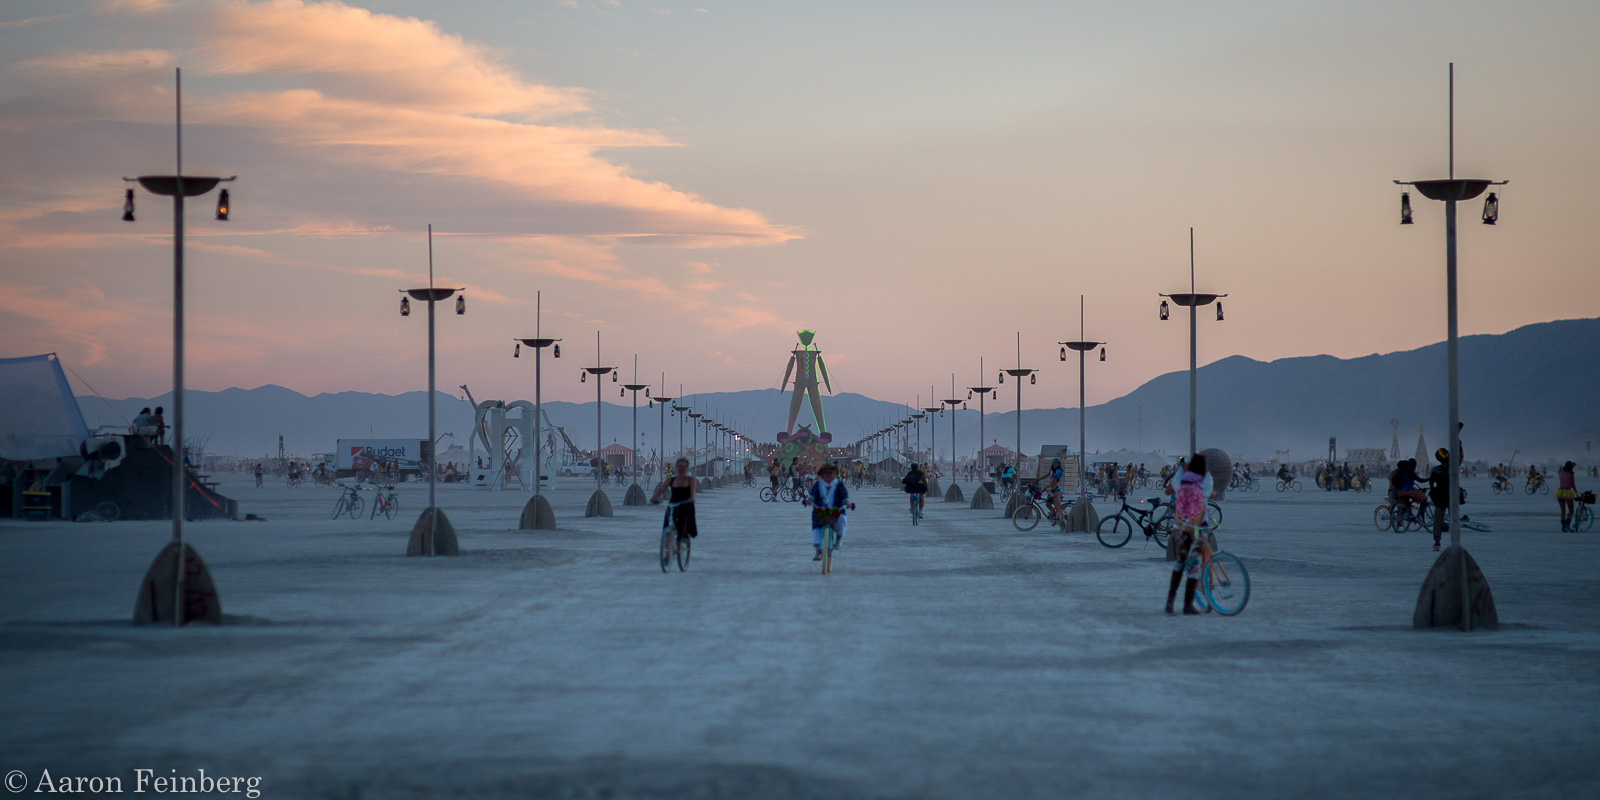 black rock city,burning man,burning man 2015,carnival of mirrors,feinberg, photo